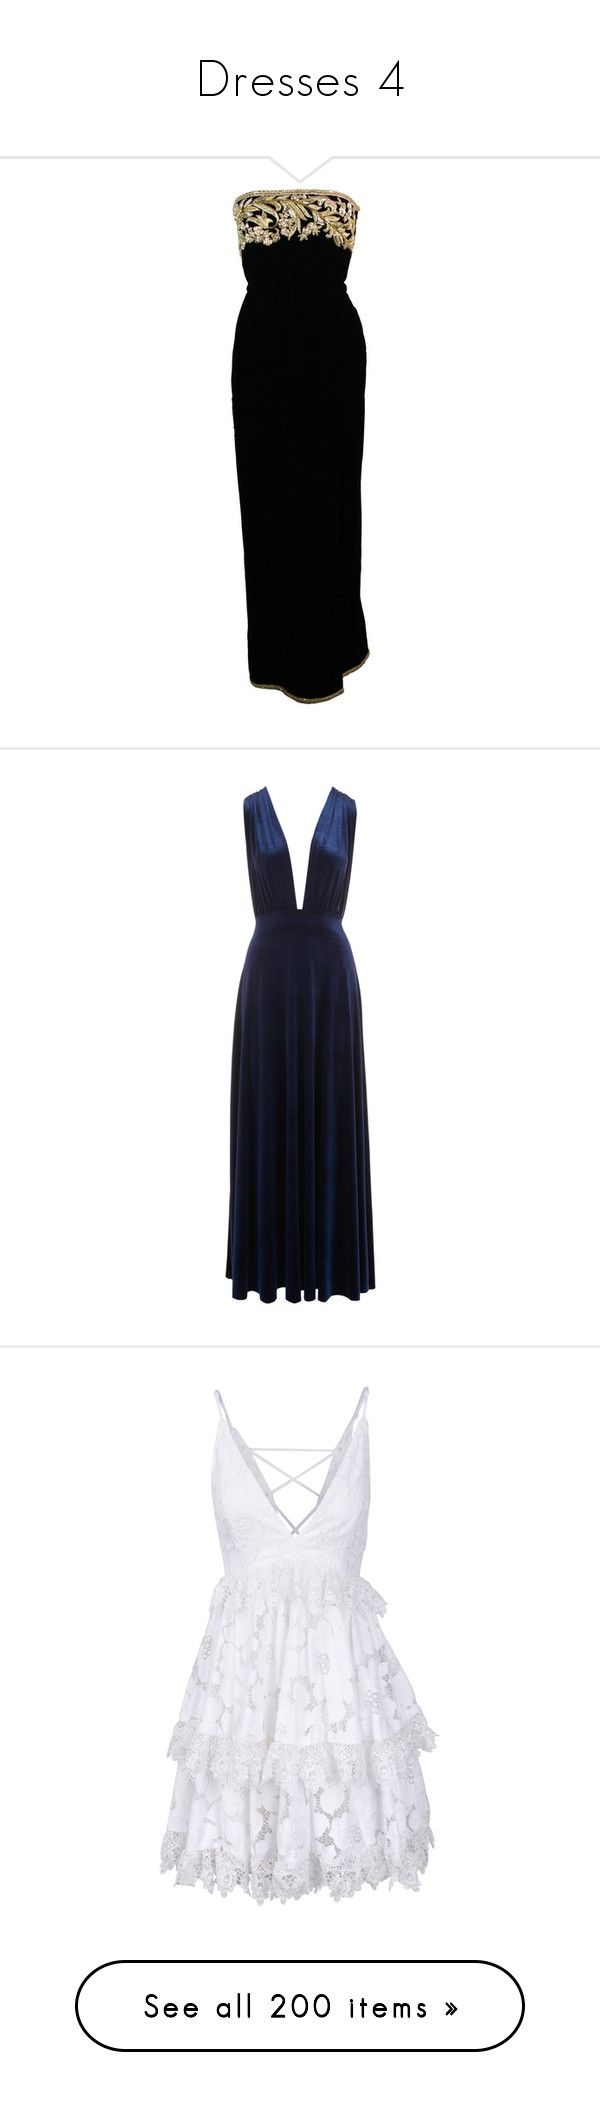 """""""Dresses 4"""" by stylinson22 ❤ liked on Polyvore featuring dresses, gowns, metallic evening gowns, metallic evening dress, embelished dress, embellished evening gowns, velvet evening gown, long dress, long wrap dress and blue velvet dress"""